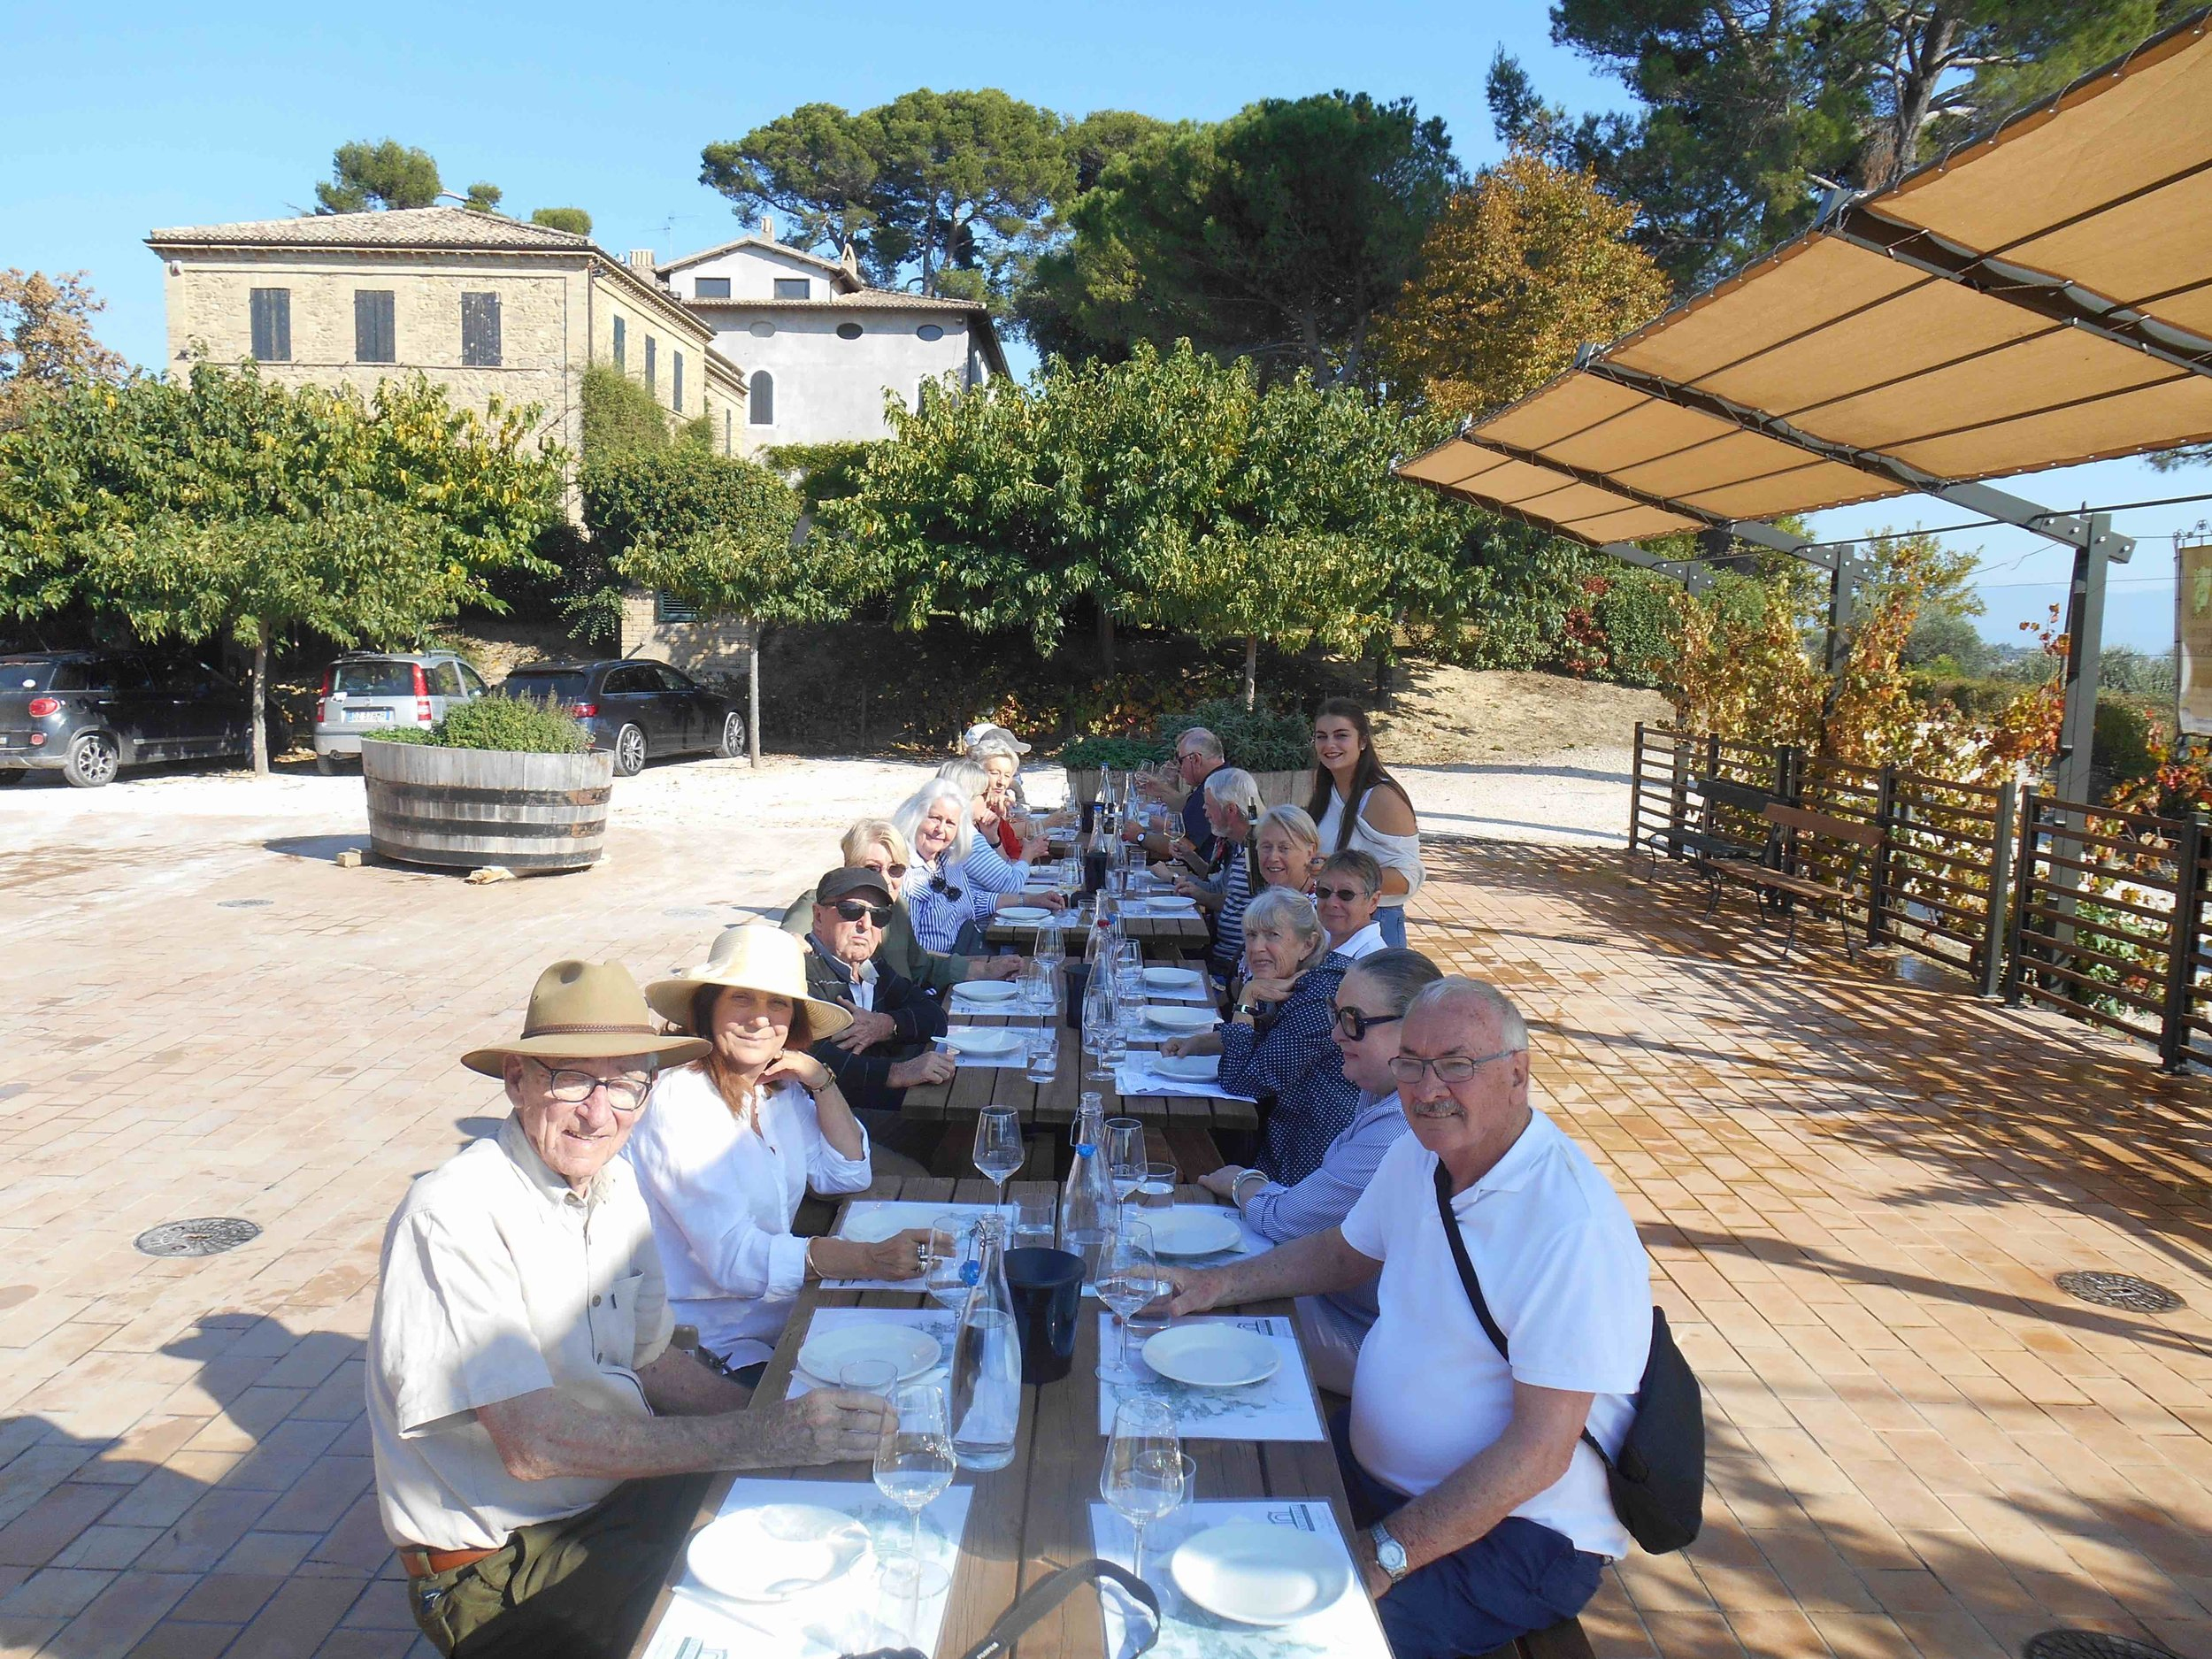 Frank and Mary - first 2 tour participants seated in the right row, enjoying a long lazy lunch on their 2018 'Enchanting Italy Uncovered' Tour